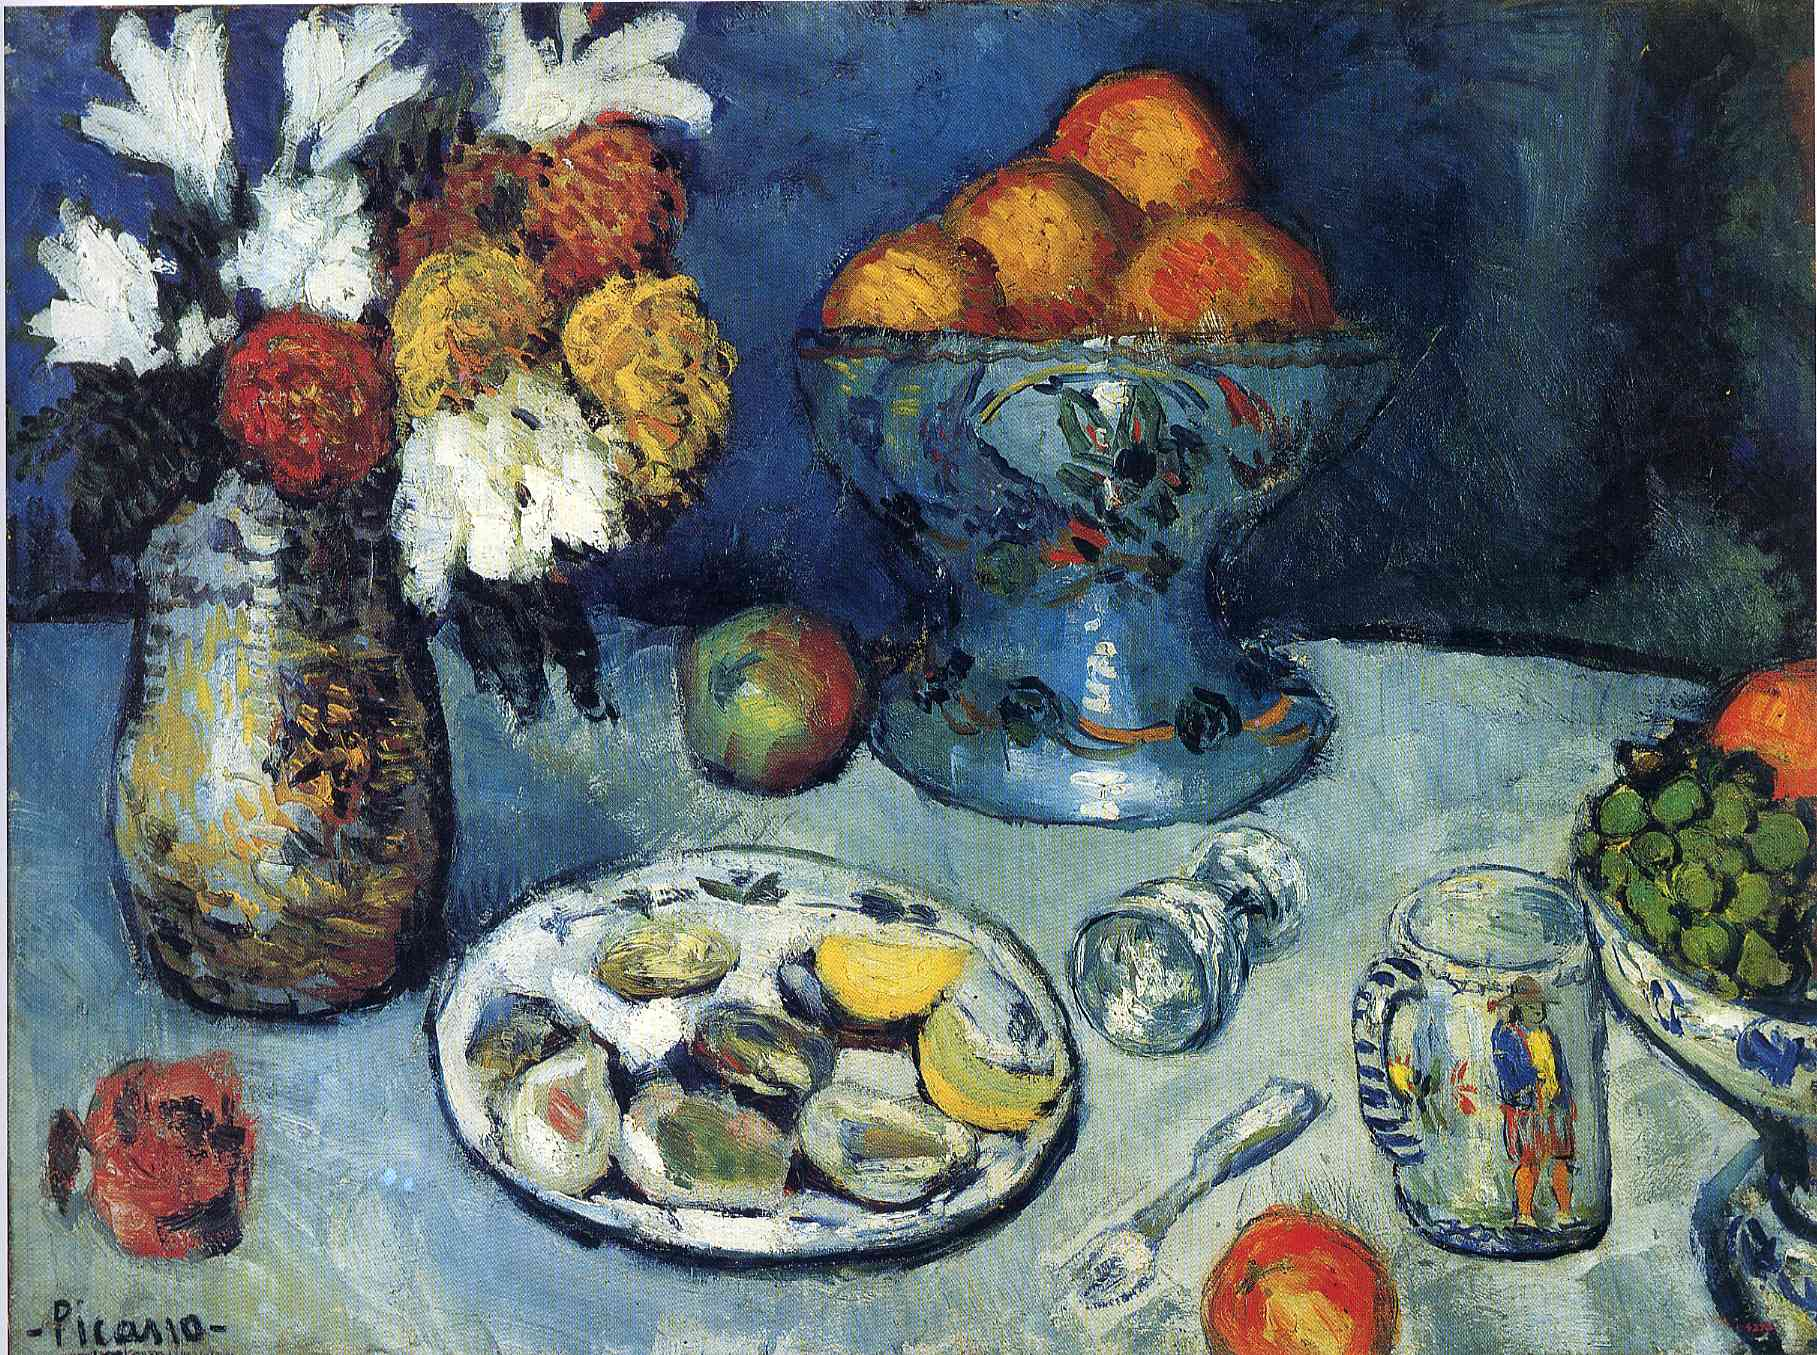 Biography of Pablo Picasso and History of His Art